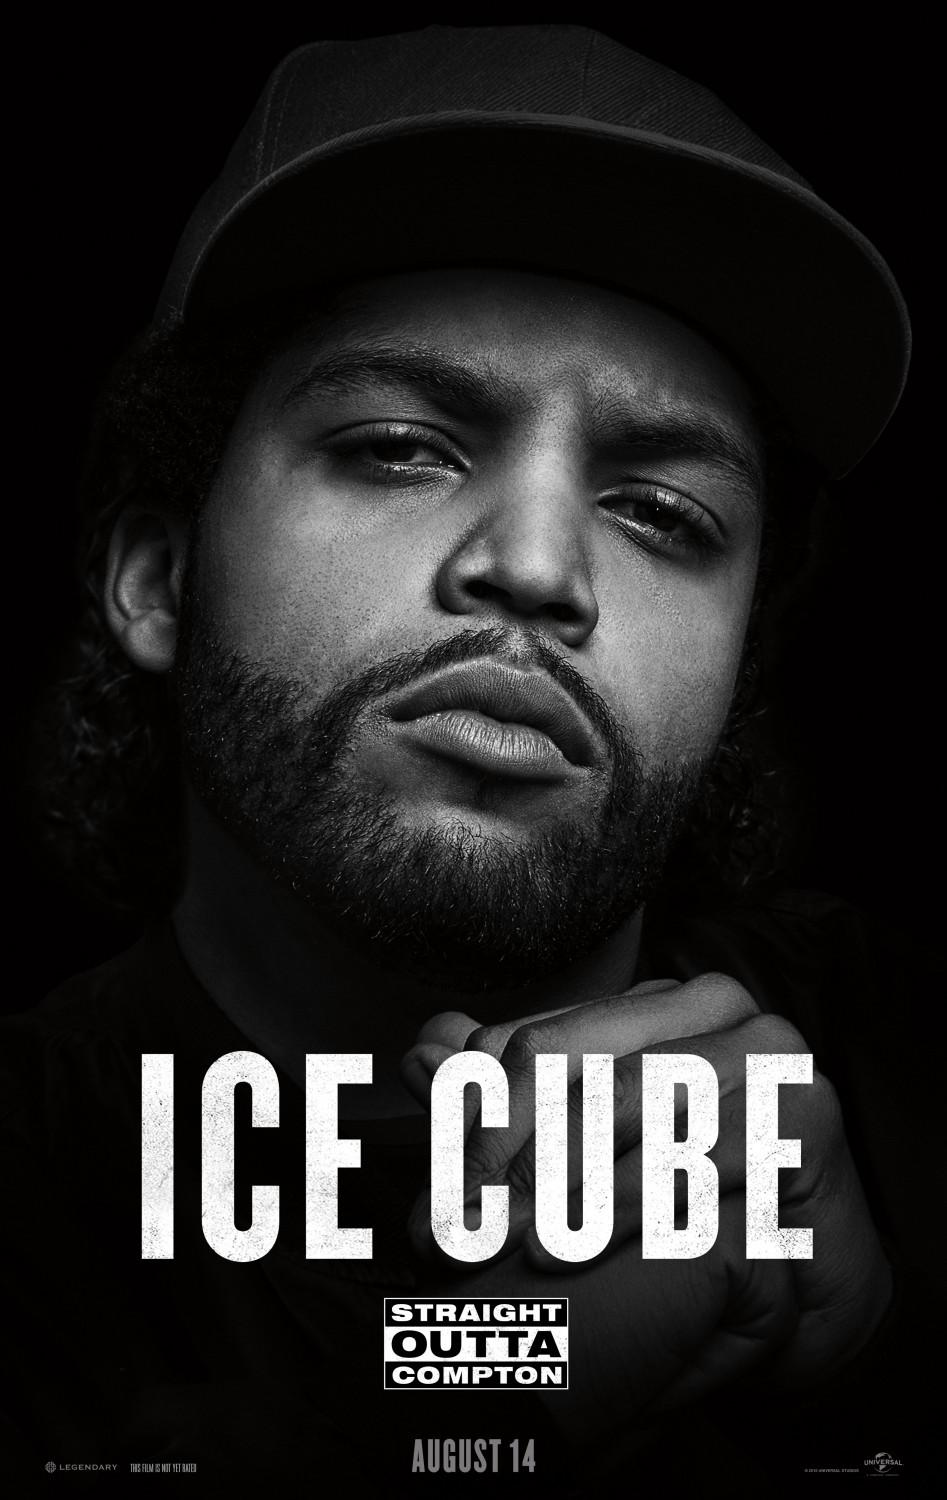 Straight outta Compton - film music poster - ICE CUBE